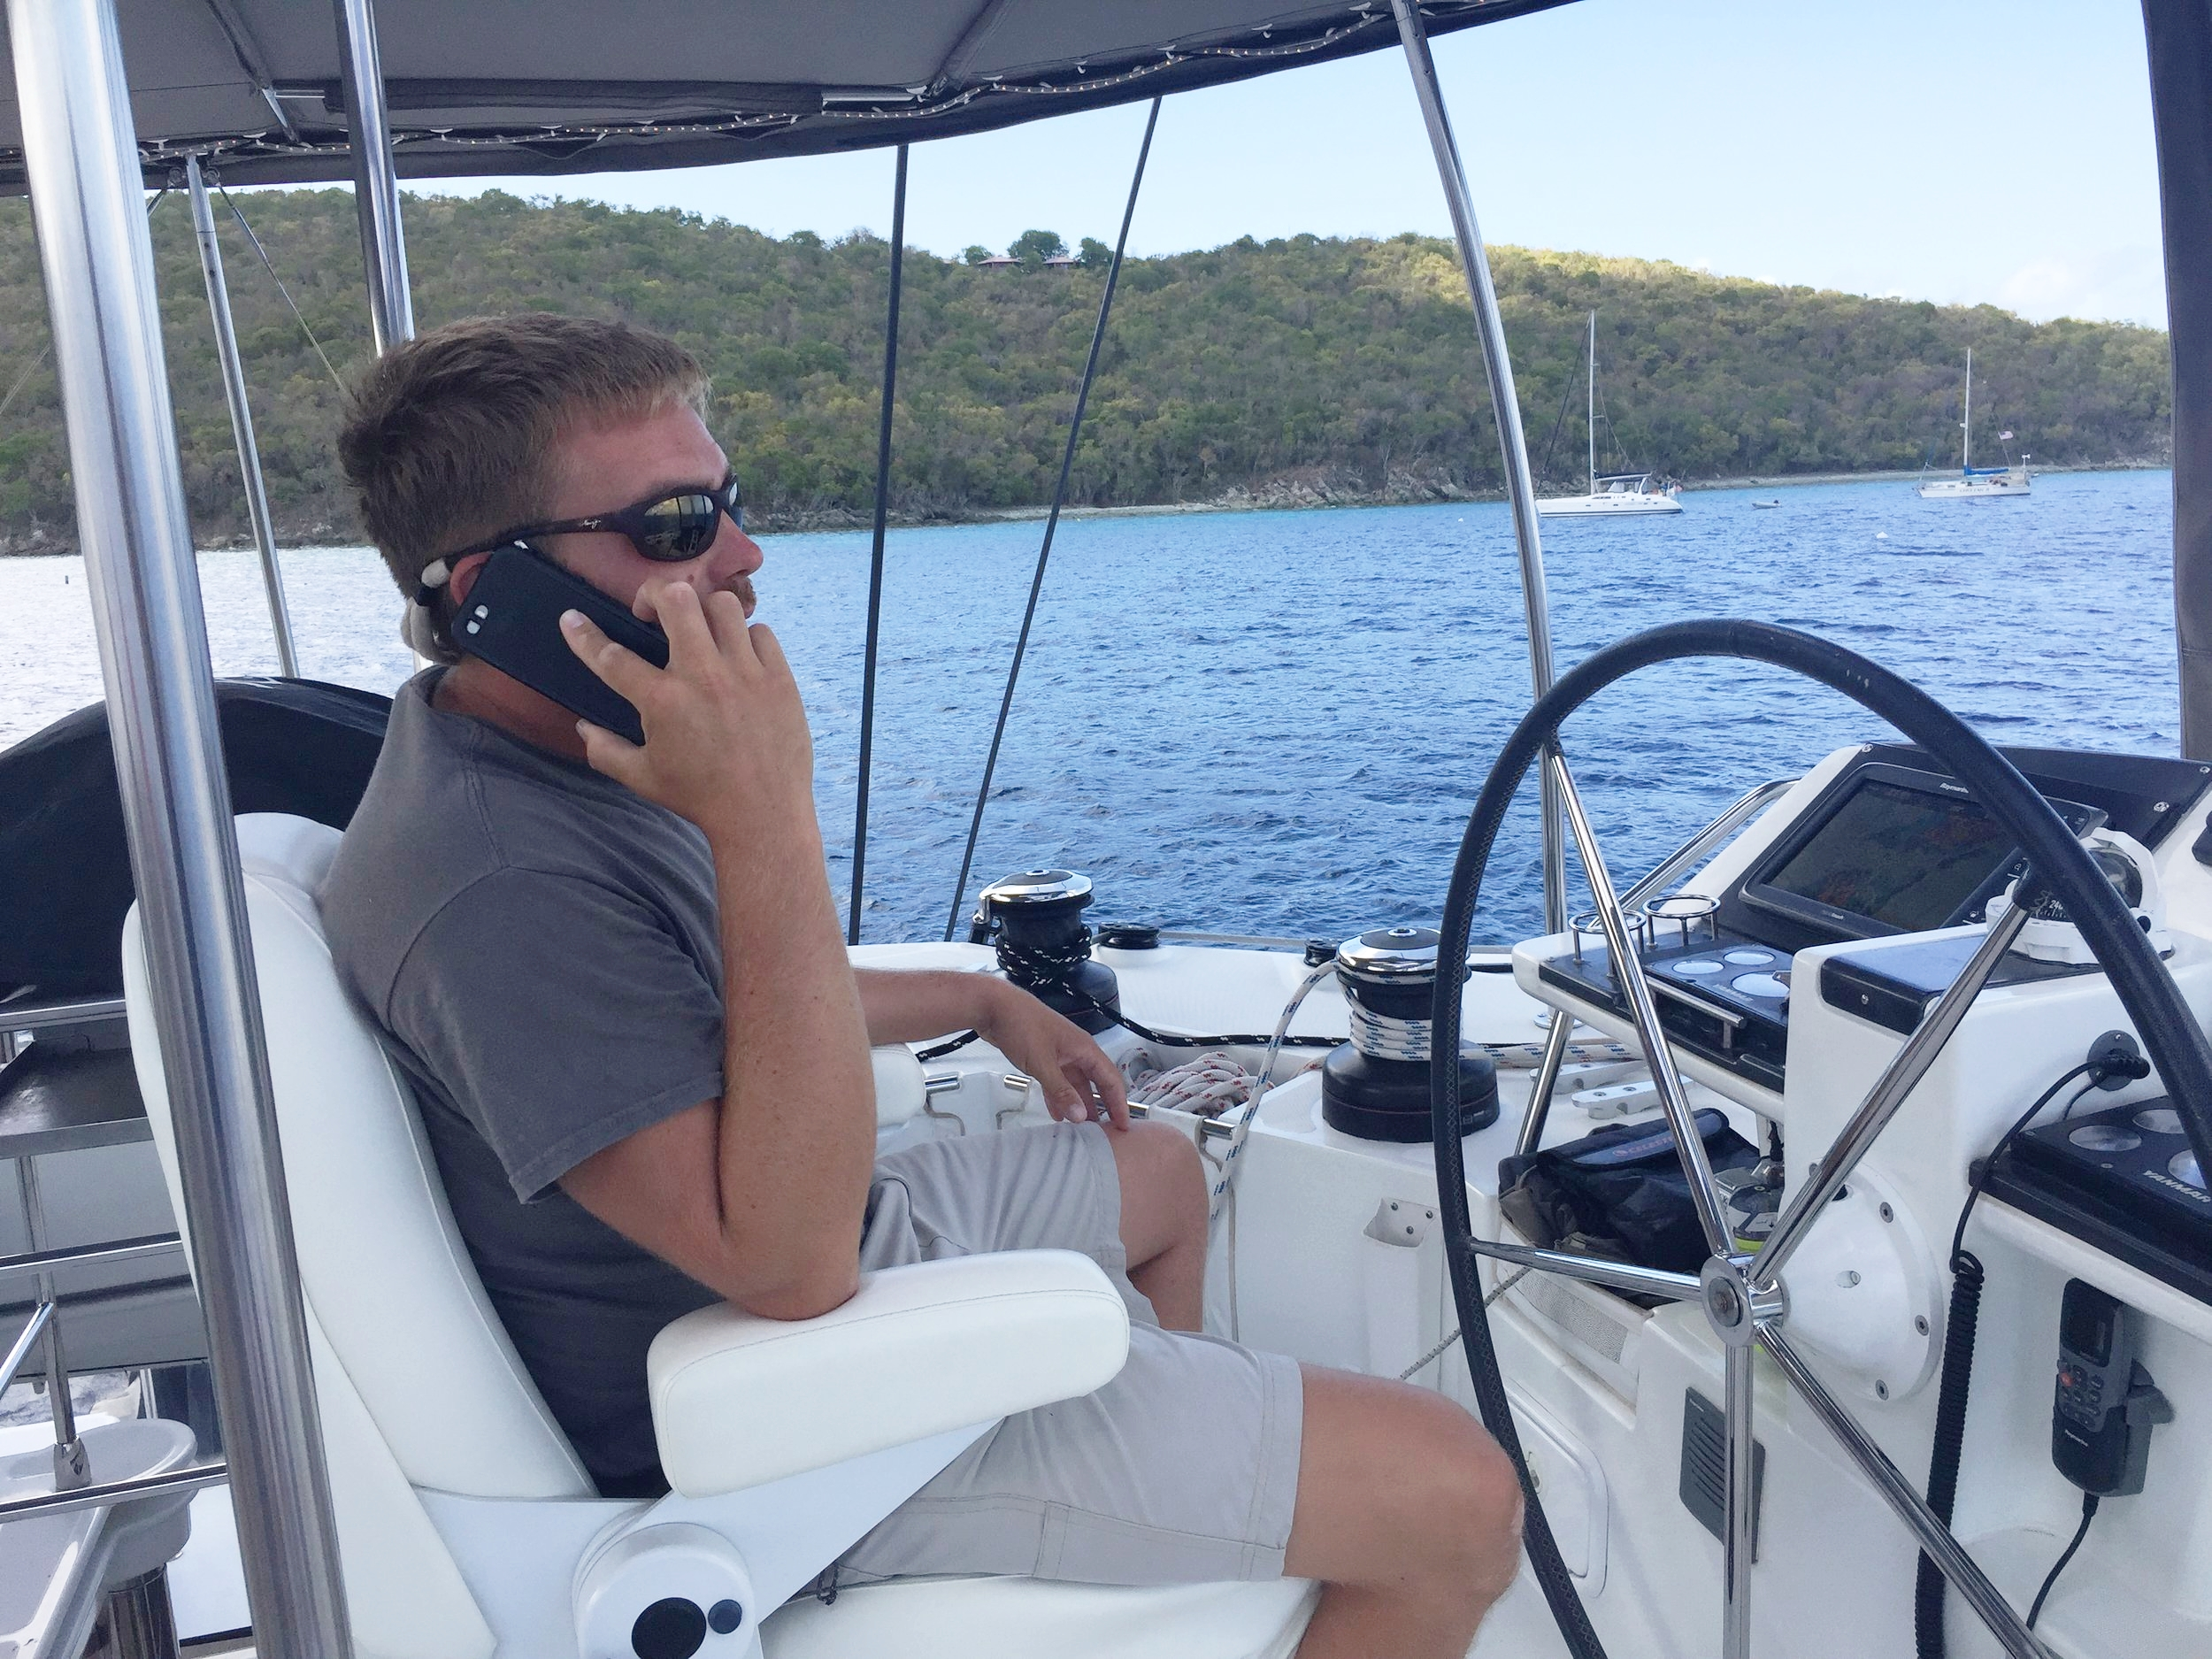 Bryan in the captain's chair